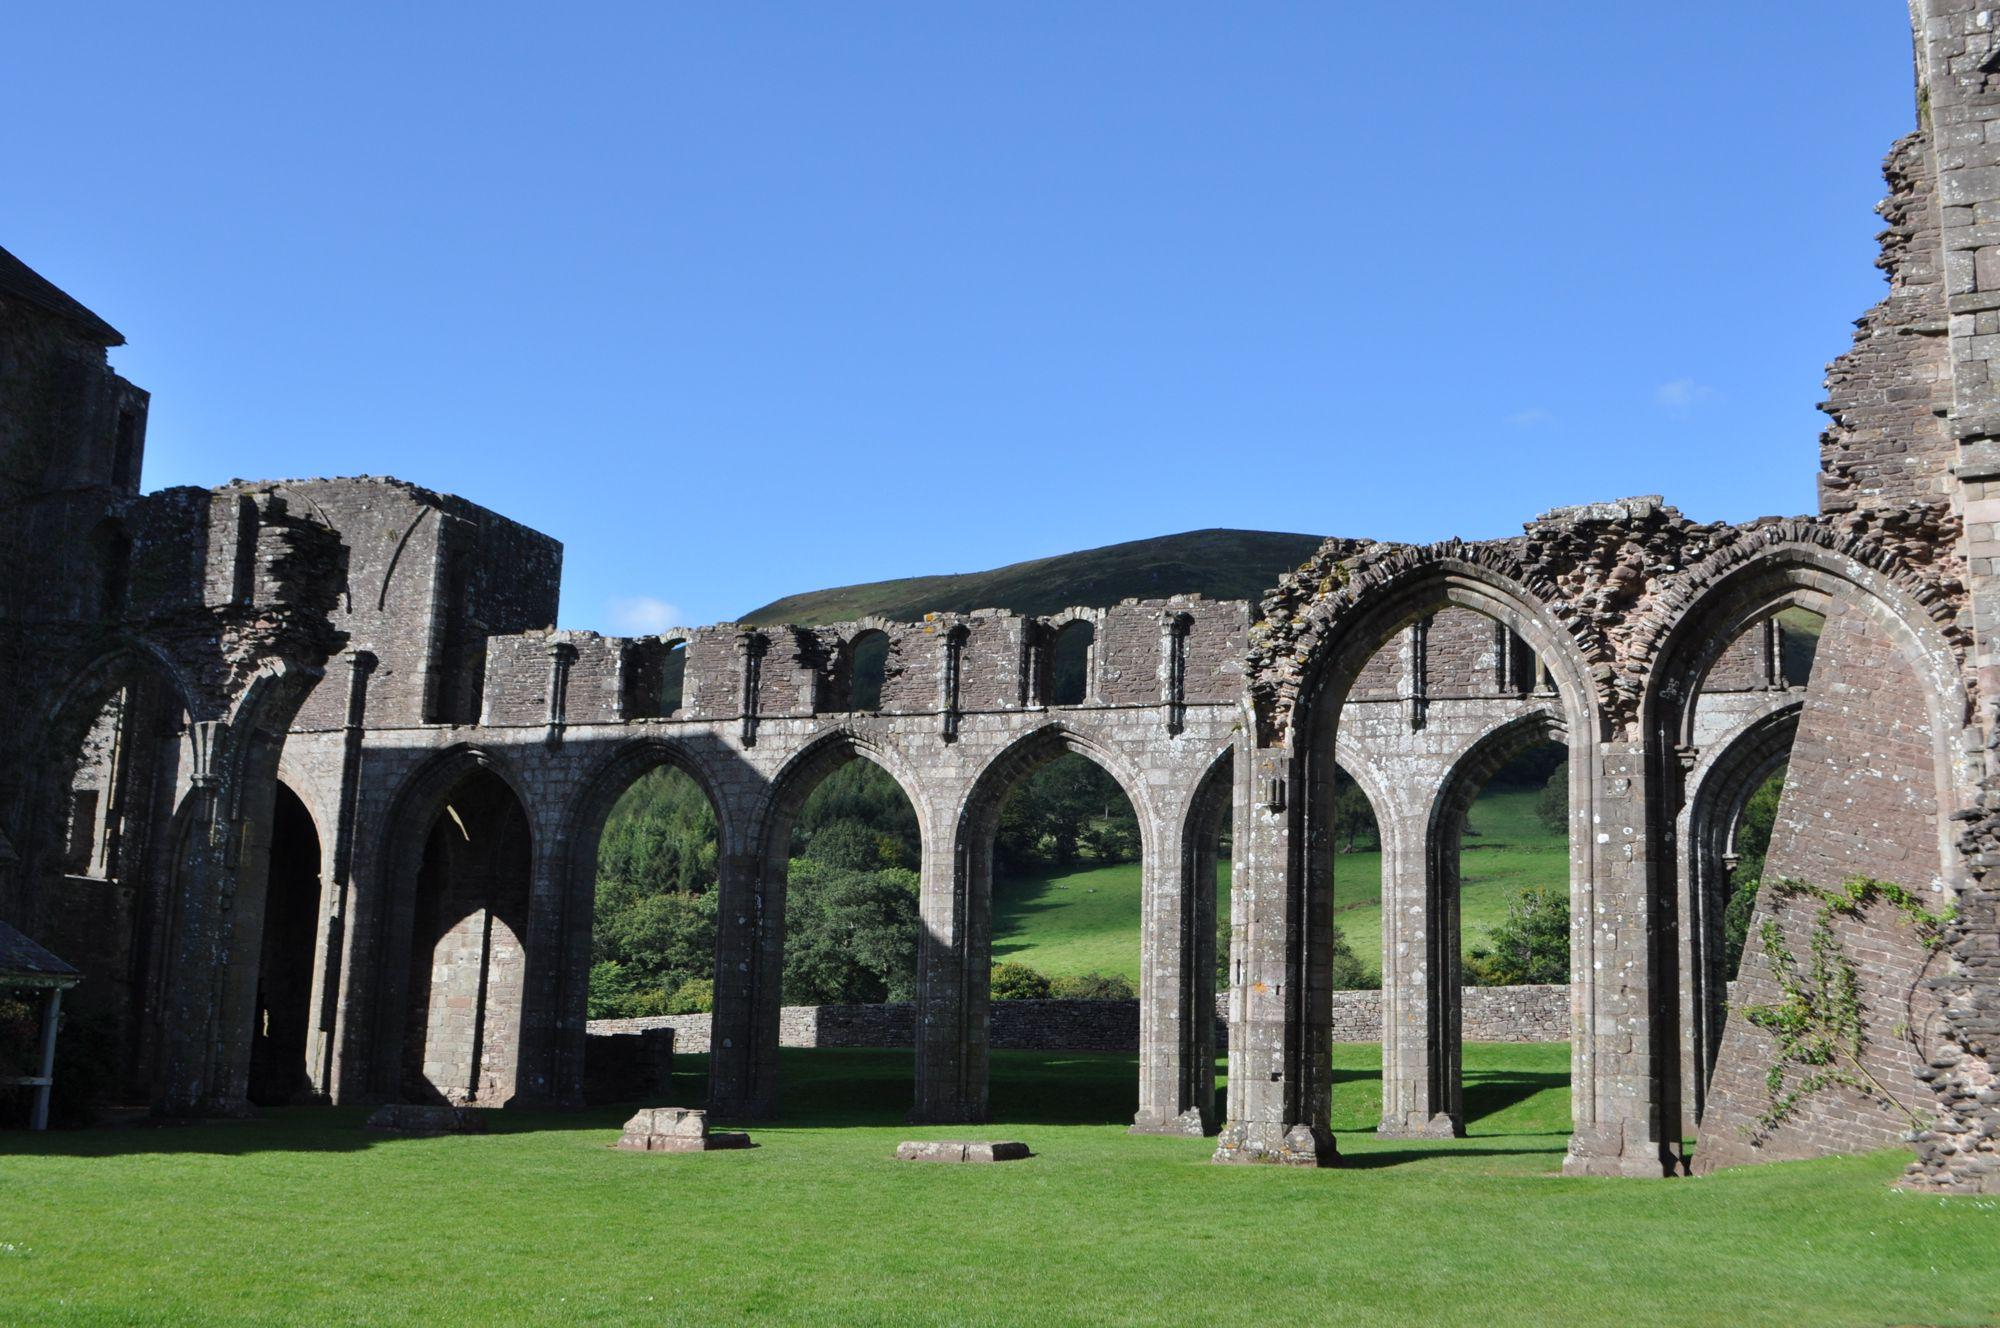 Llanthony Camping | Campsites in Llanthony, Brecon Beacons